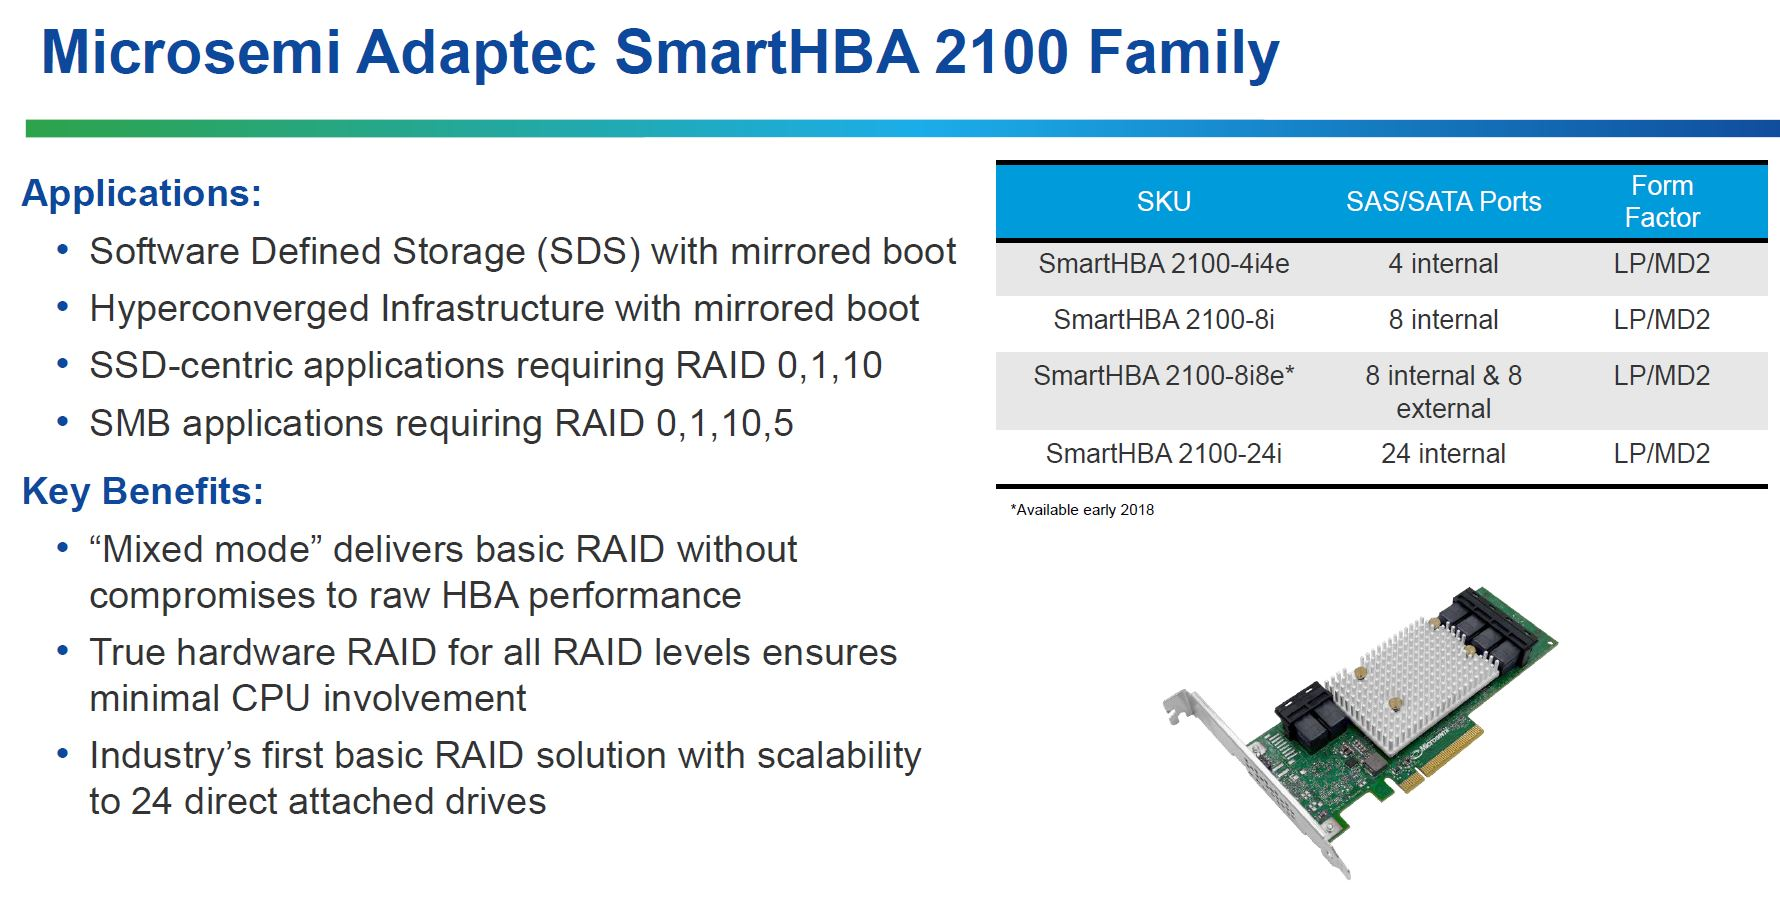 Microsemi Adaptec SmartHBA 2100 Family